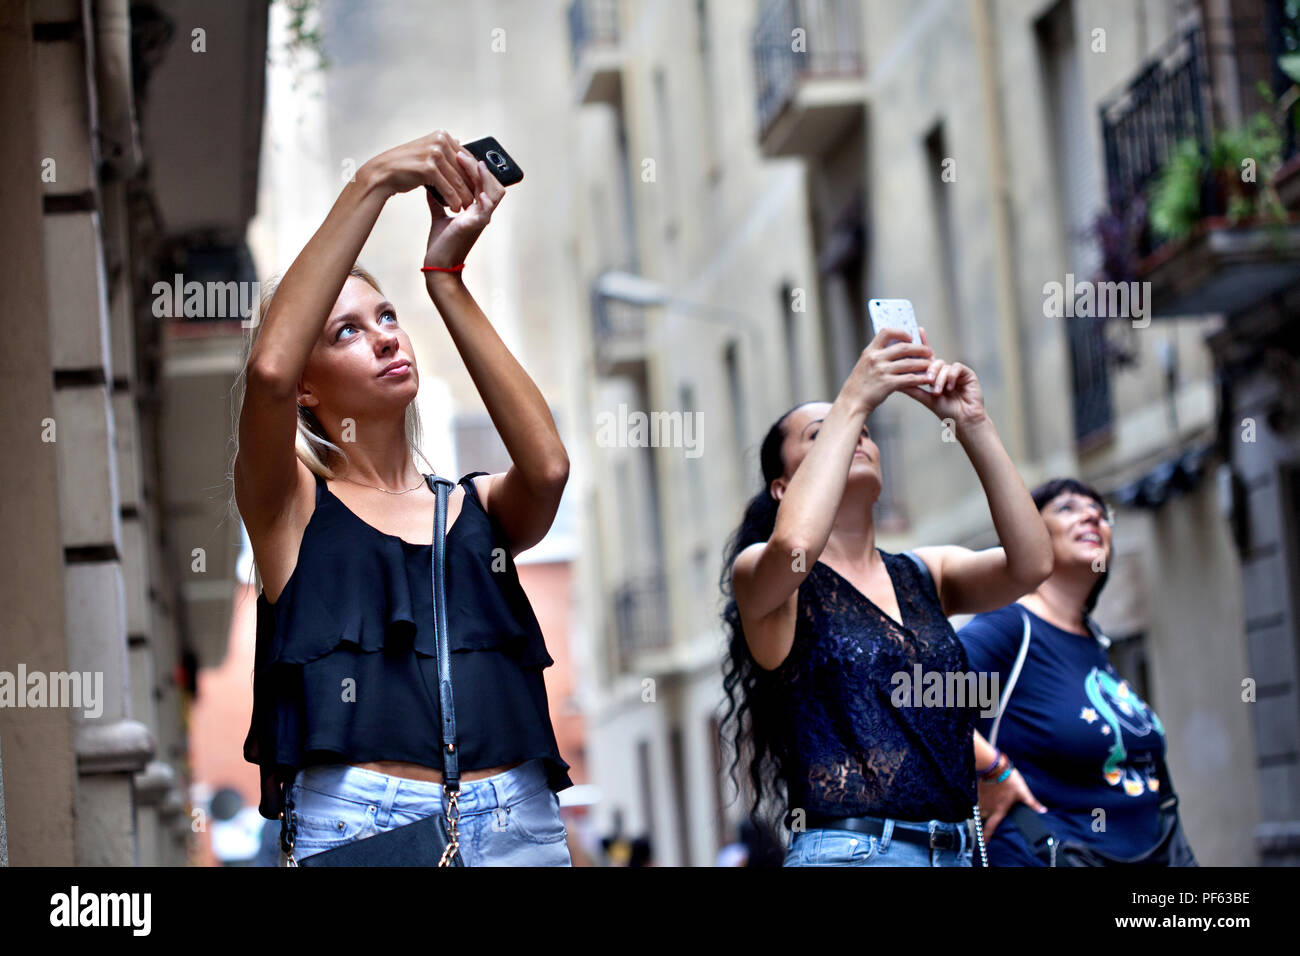 Young women taking photos on their smartphones, Gracia, Barcelona. - Stock Image